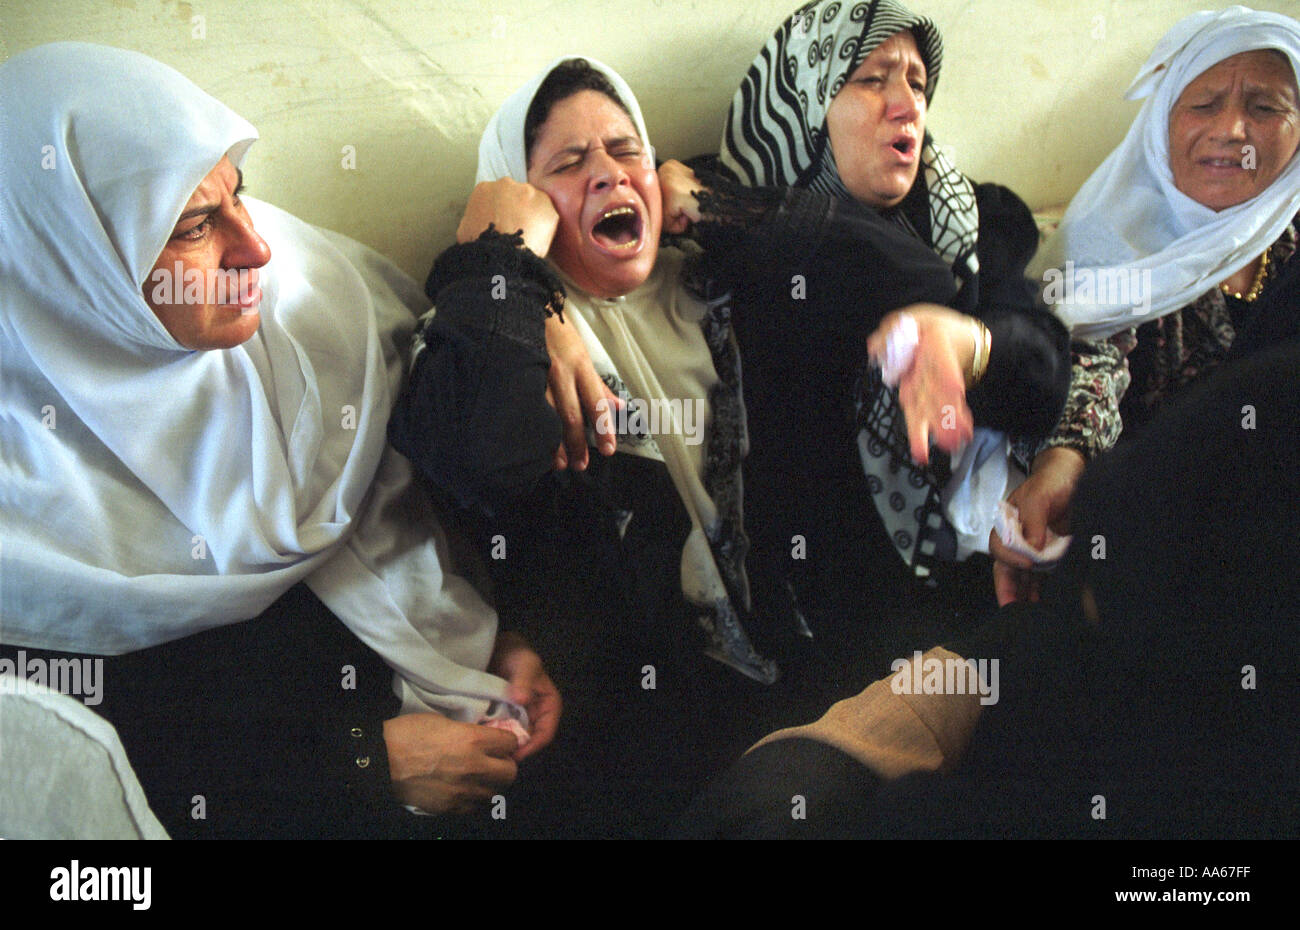 The family of Yusuf Khalifa 18 mourns his death in Gaza Monday October 9 2000 Tensions are running high between the - Stock Image